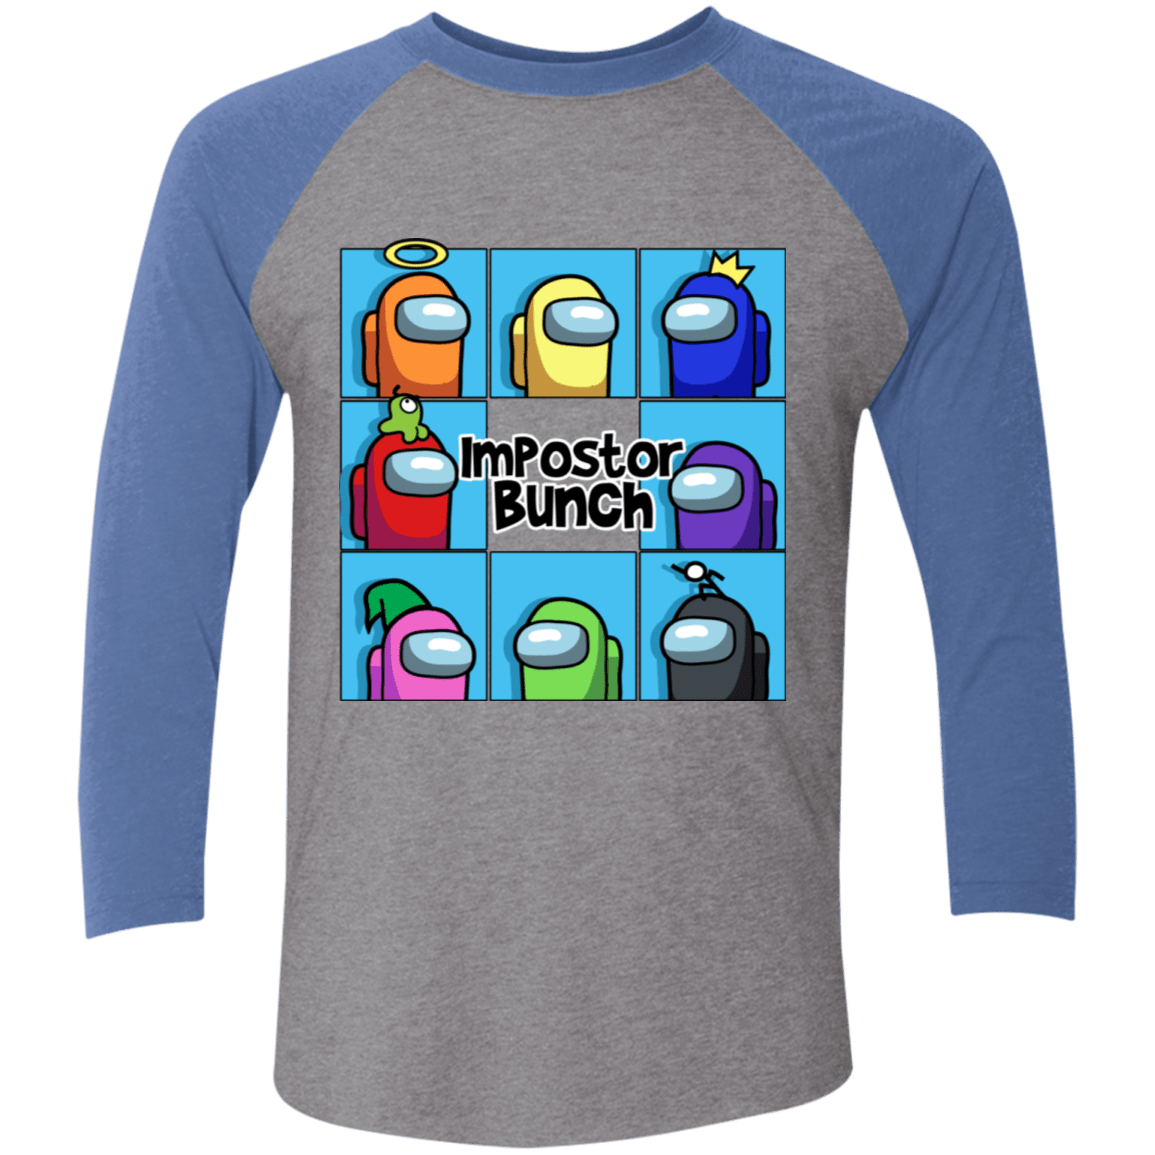 T-Shirts Premium Heather/Vintage Royal / X-Small Imposter Bunch Men's Triblend 3/4 Sleeve